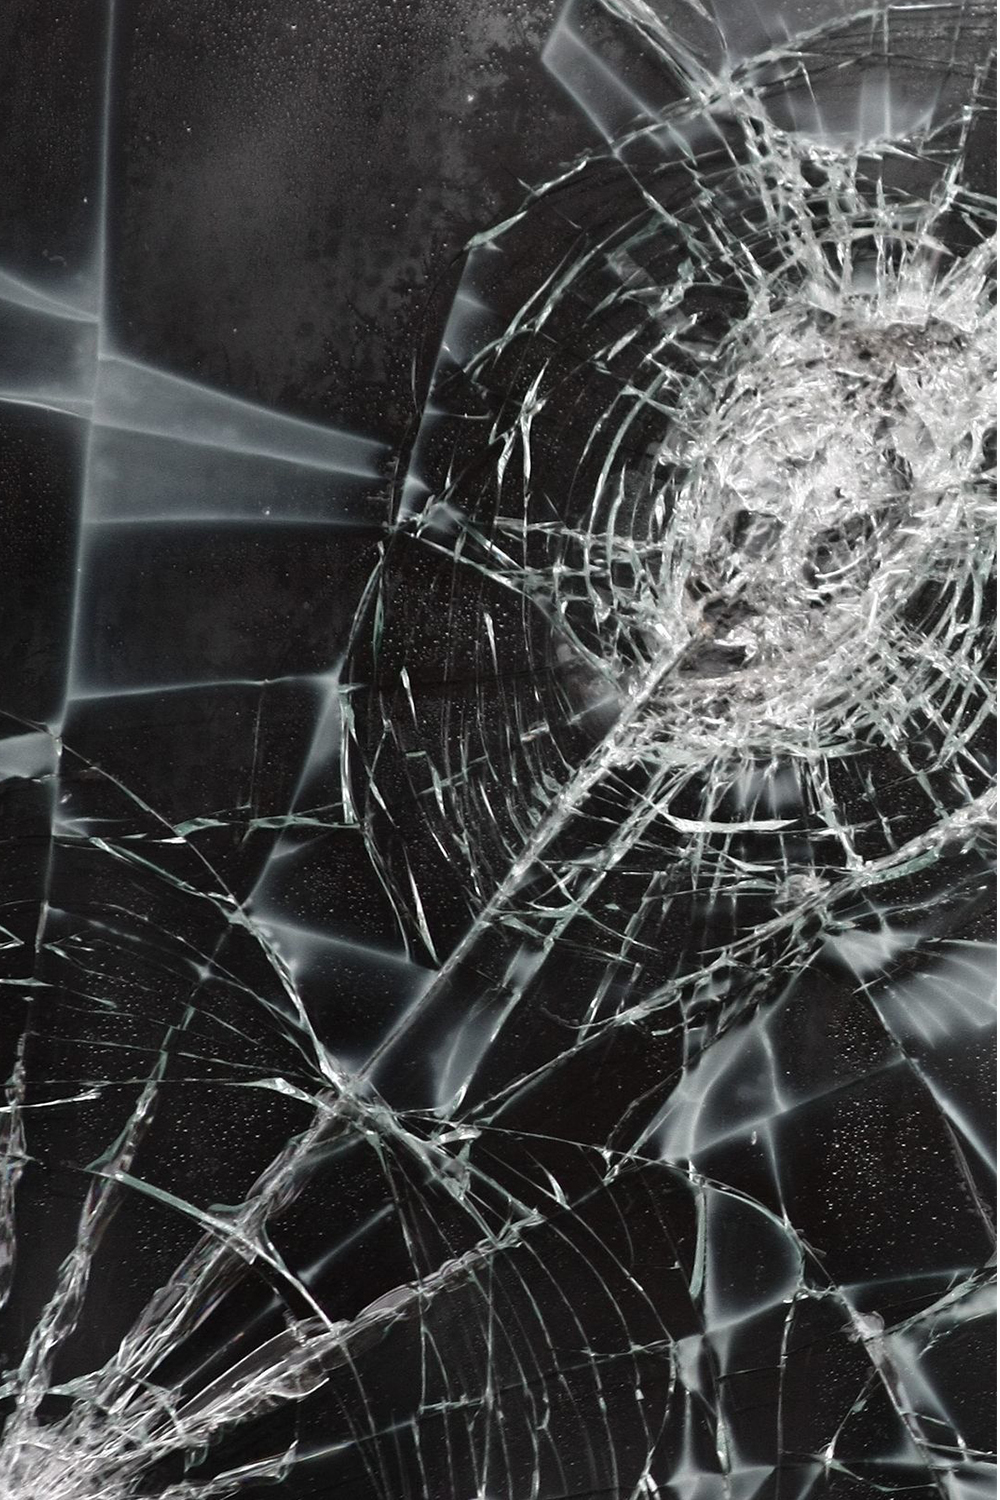 Broken Screen Wallpaper 4k Broken Screen Wallpaper 4k Download Broken Screen Wallpaper 3d D In 2020 Broken Screen Wallpaper Cracked Iphone Screen Screen Wallpaper Hd